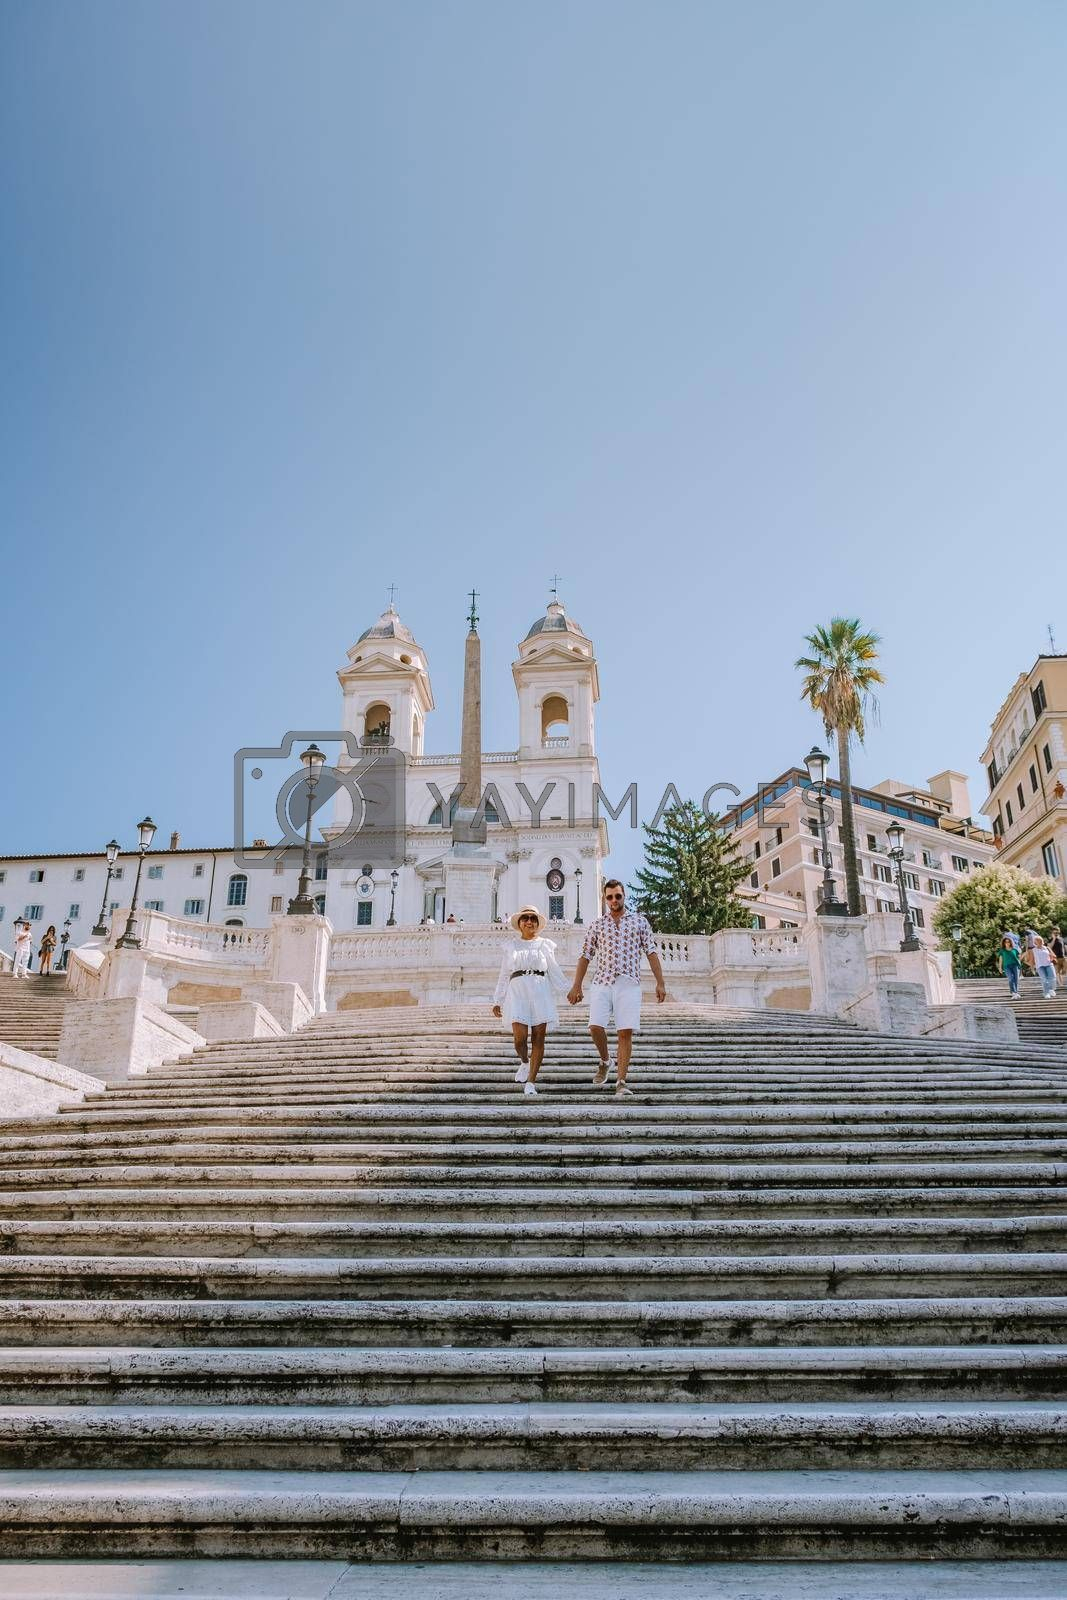 Rome September 2020, The Spanish Steps in Rome, Italy. The famous place is a great example of Roman Baroque Style with people with mouth protection during the covid 19 outbreak Italy Corona virus